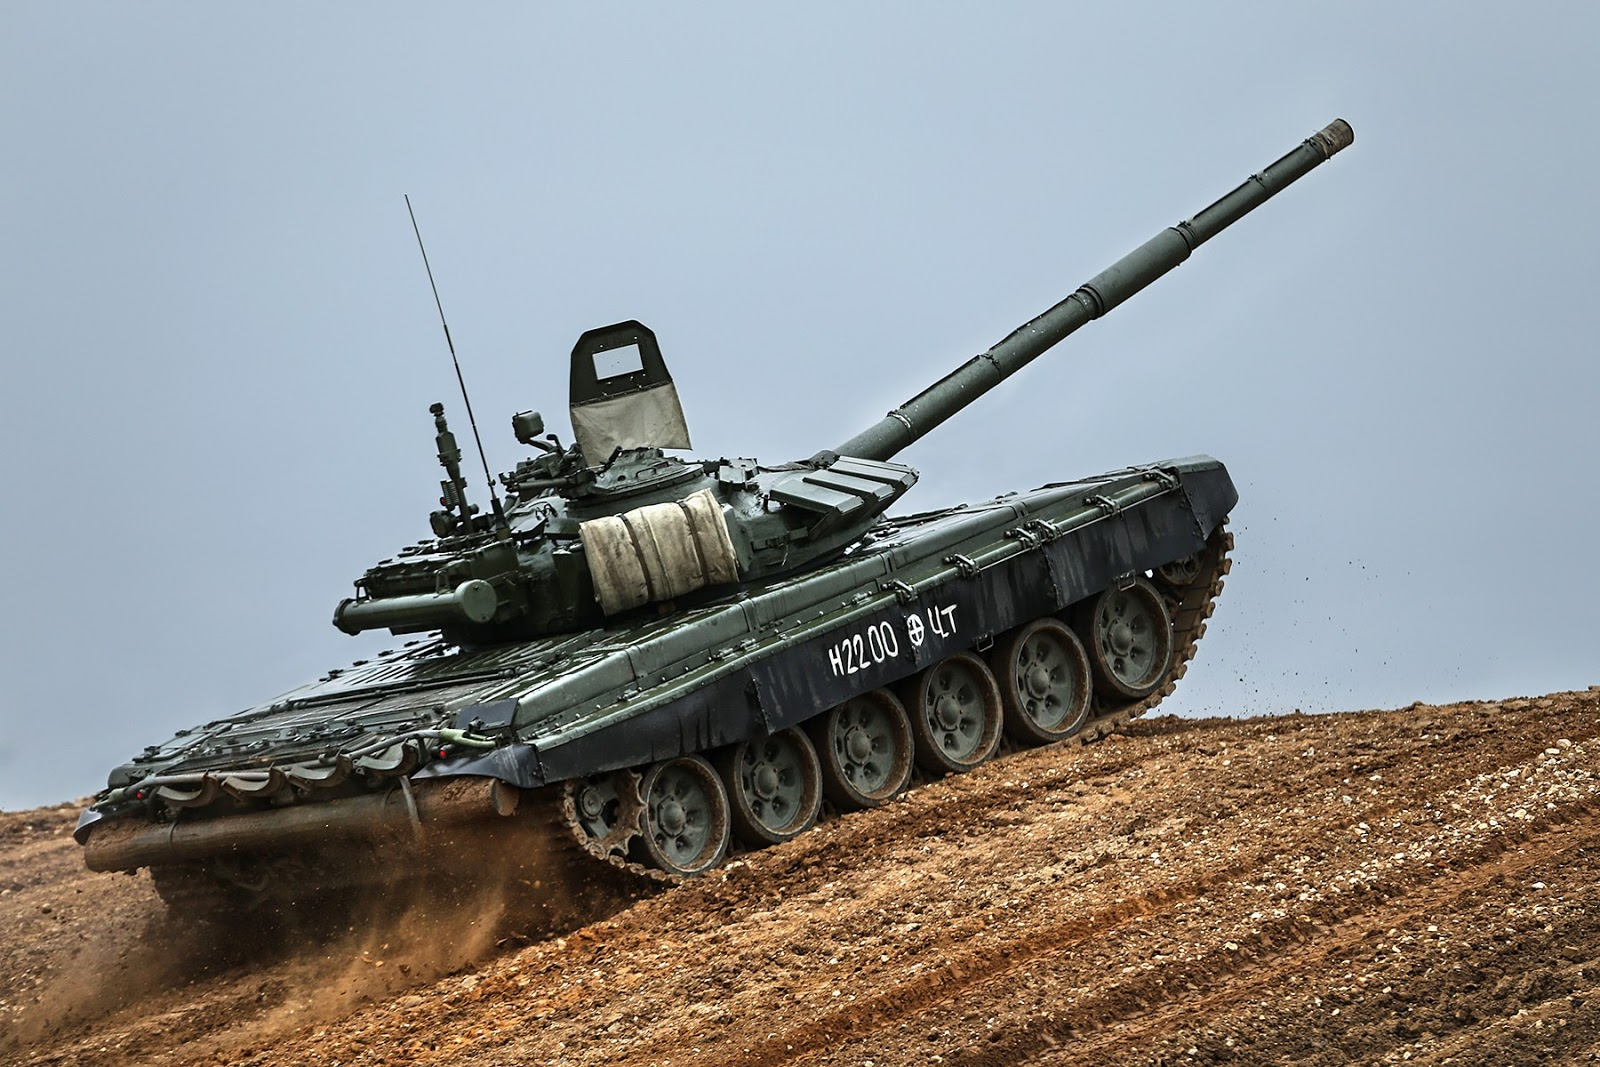 Run in: Americans tested the Russian tank